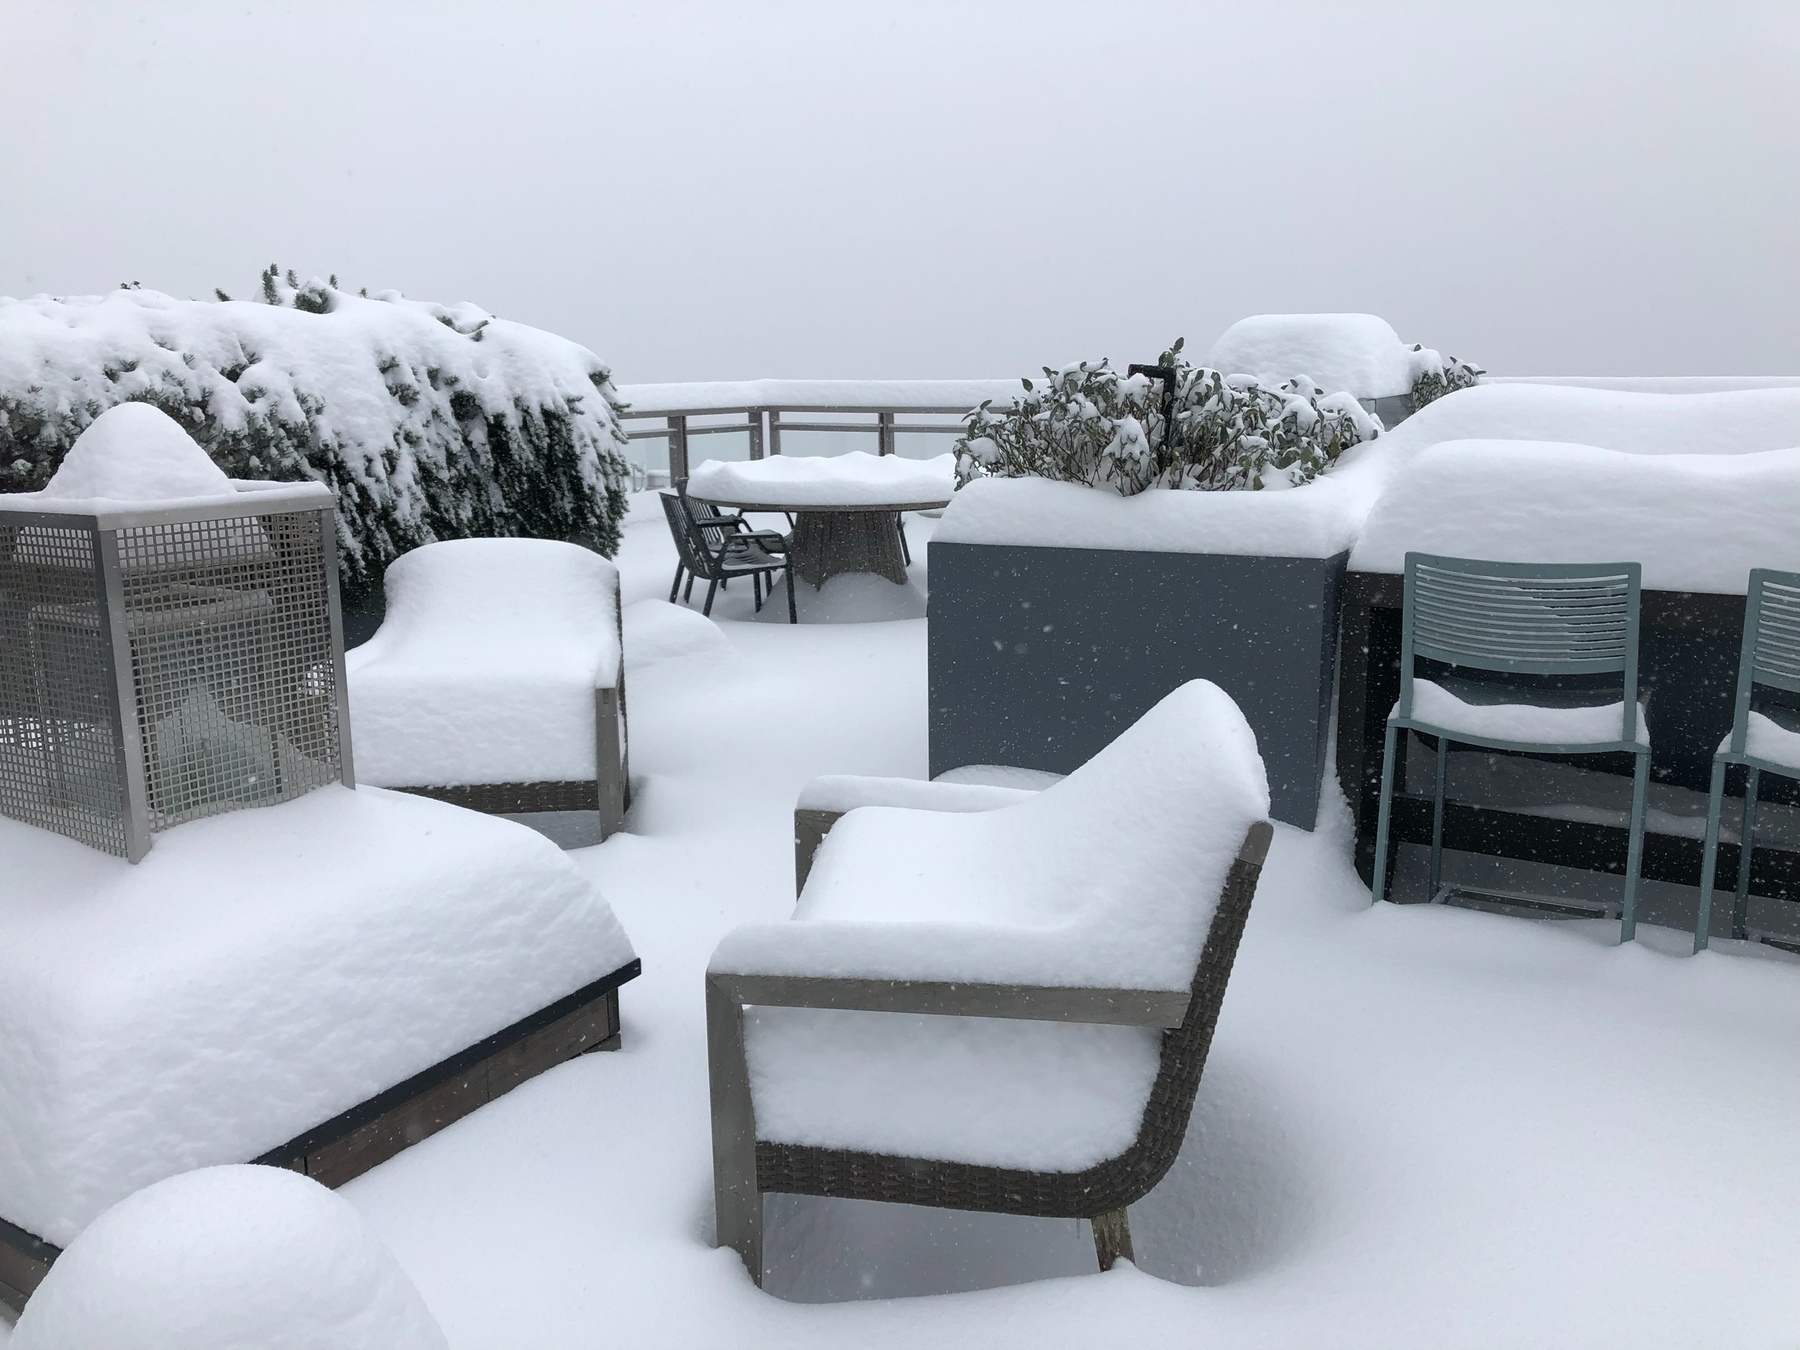 Snow is a foot high atop outdoor furniture  on a downtown rooftop deck.